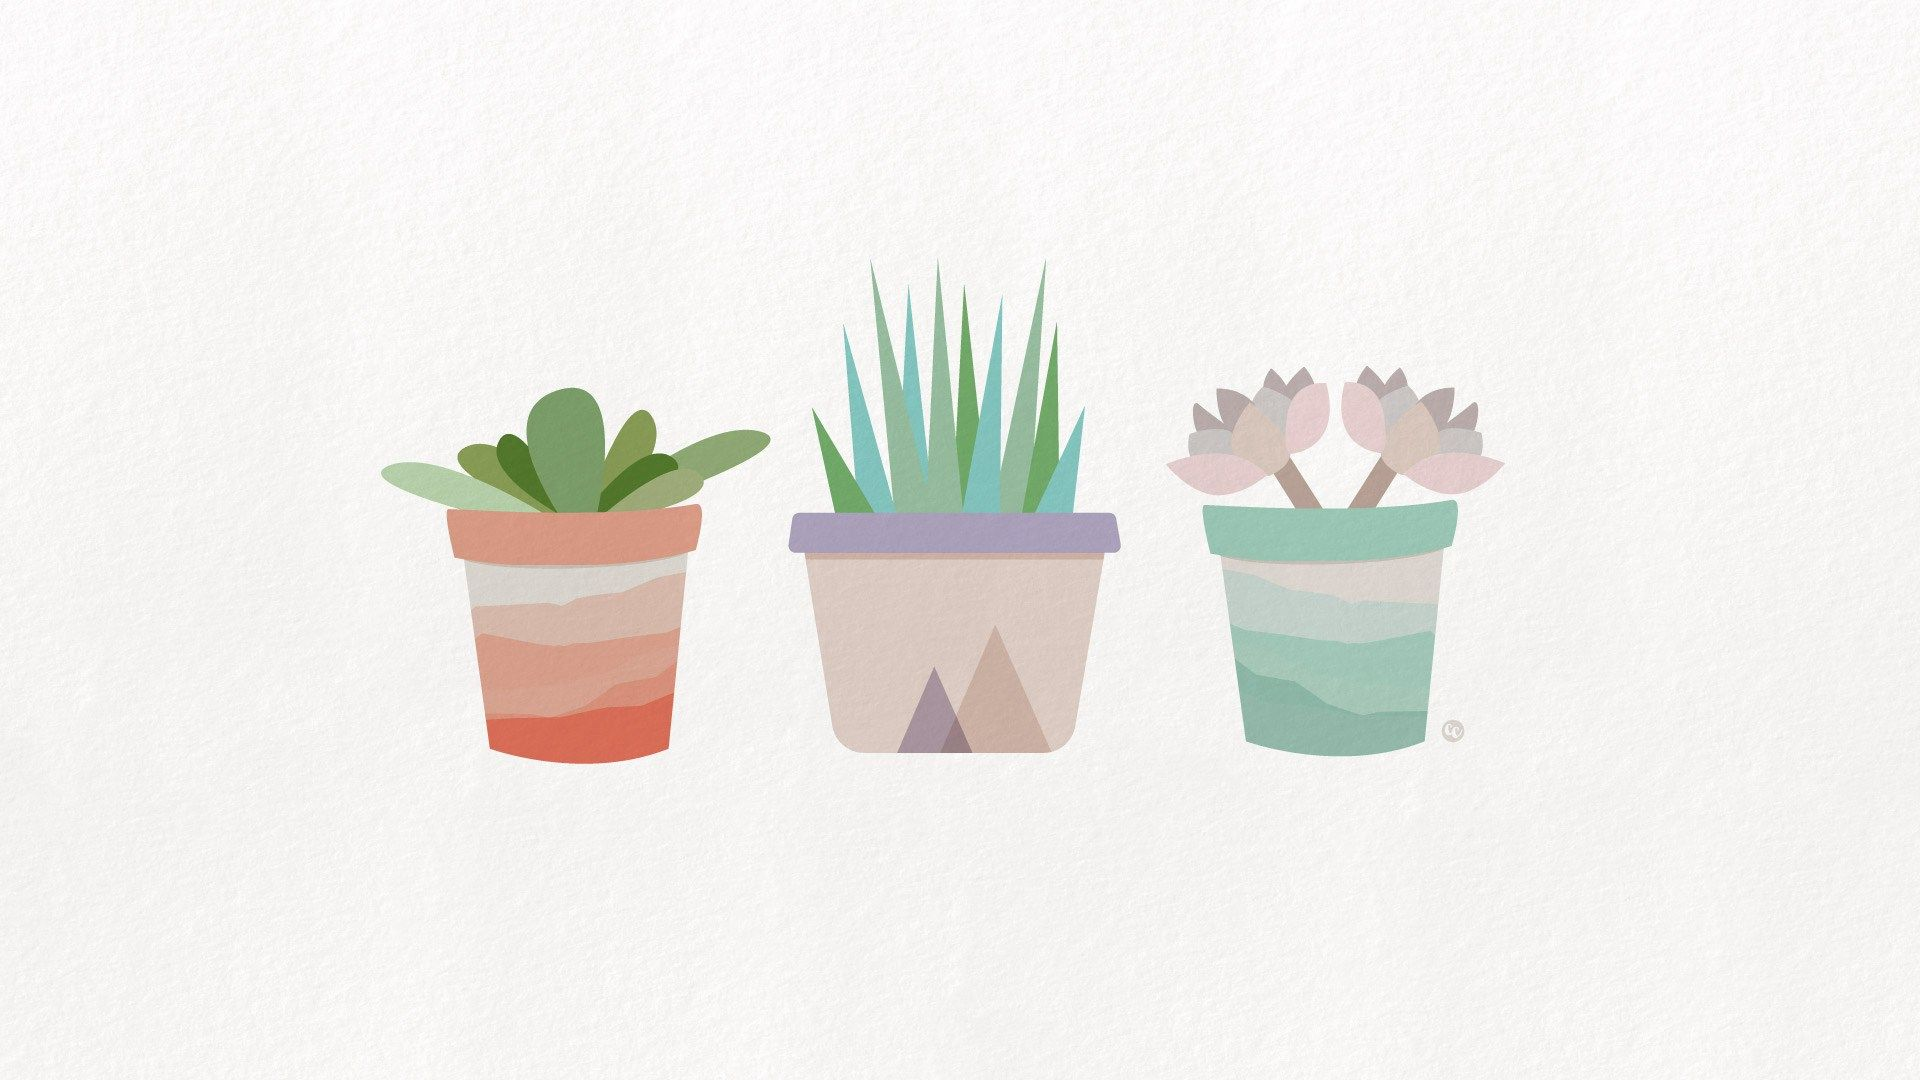 Free Desktop And Mobile Wallpapers Iphone Minimalist Wallpaper Succulents Wallpaper Minimalist Wallpaper